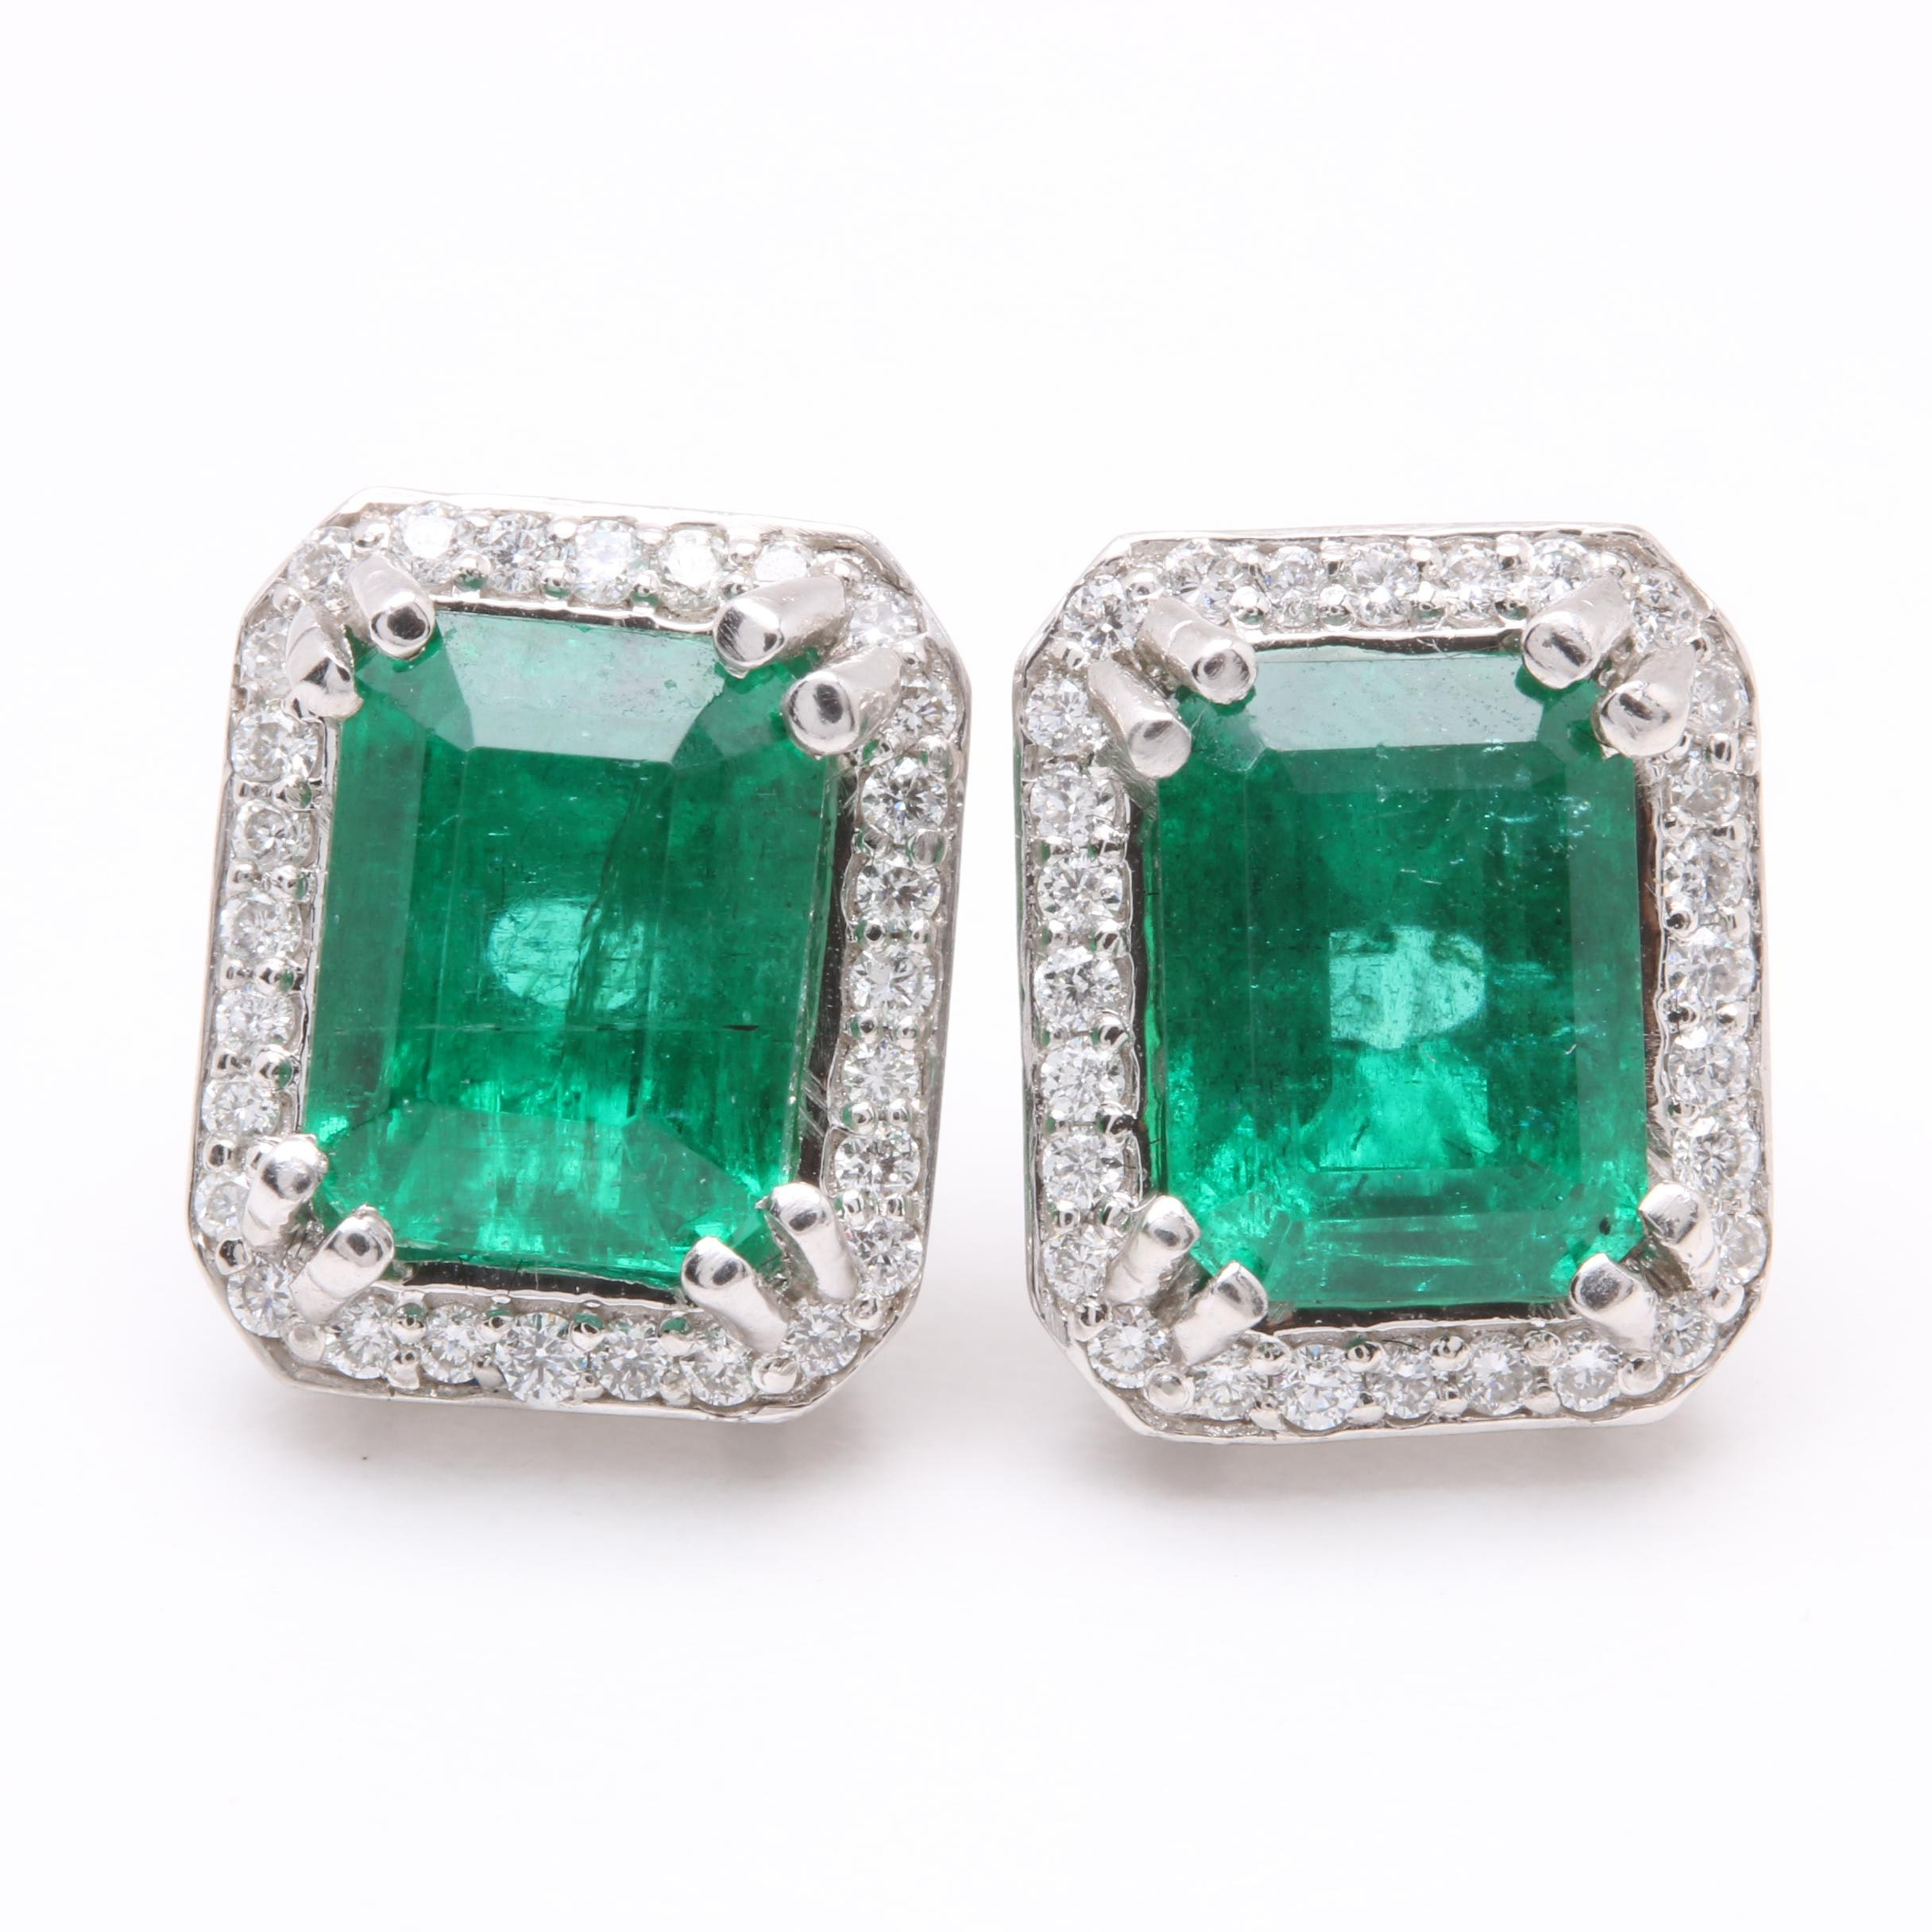 Platinum and 18K White Gold 3.52 CT Emerald and Diamond Earrings